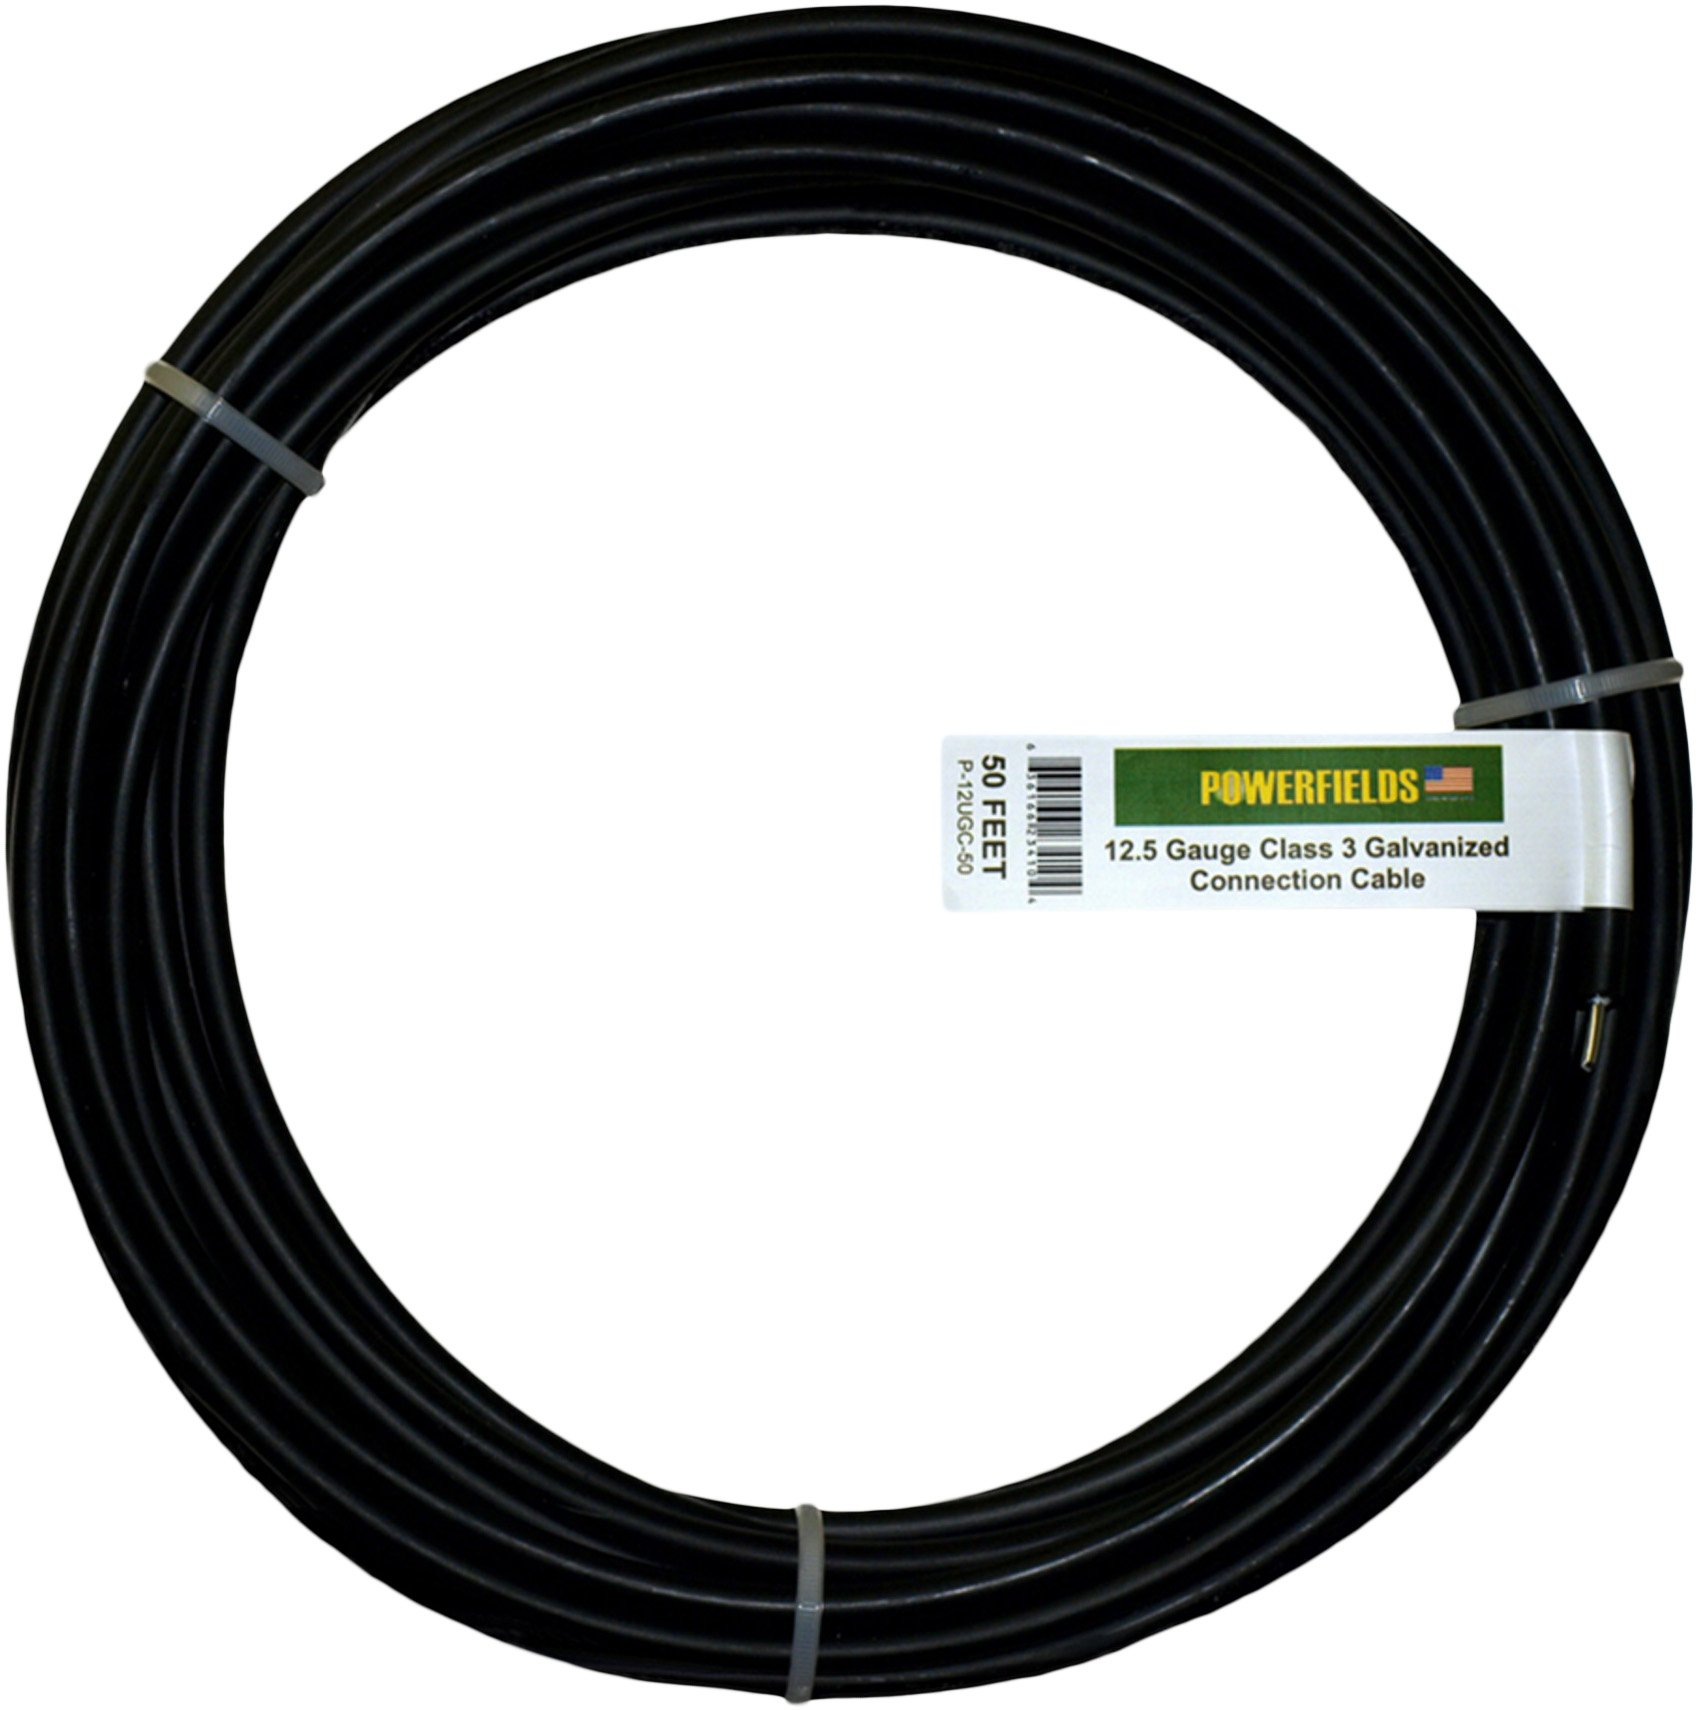 Insulated Battery Cable : Double insulated connection cable ½ gauge